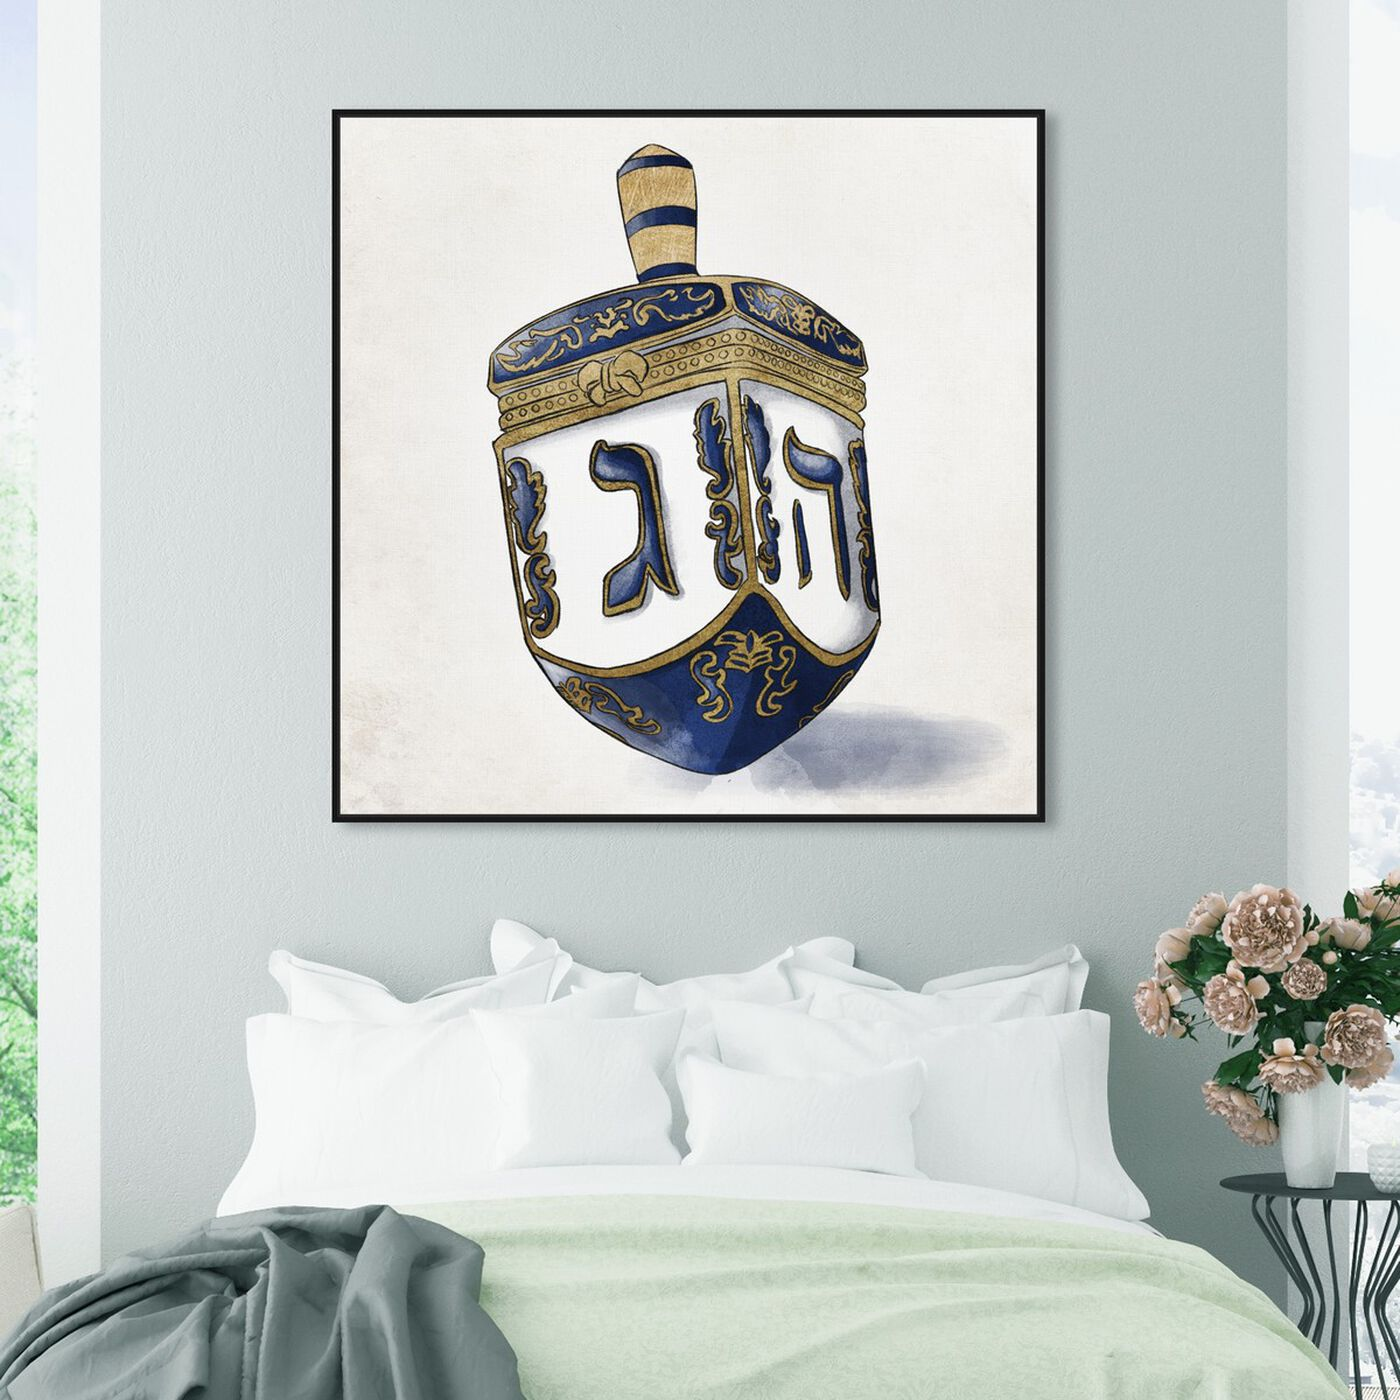 Hanging view of Decorated Dreidel Artwork featuring entertainment and hobbies and board games art.